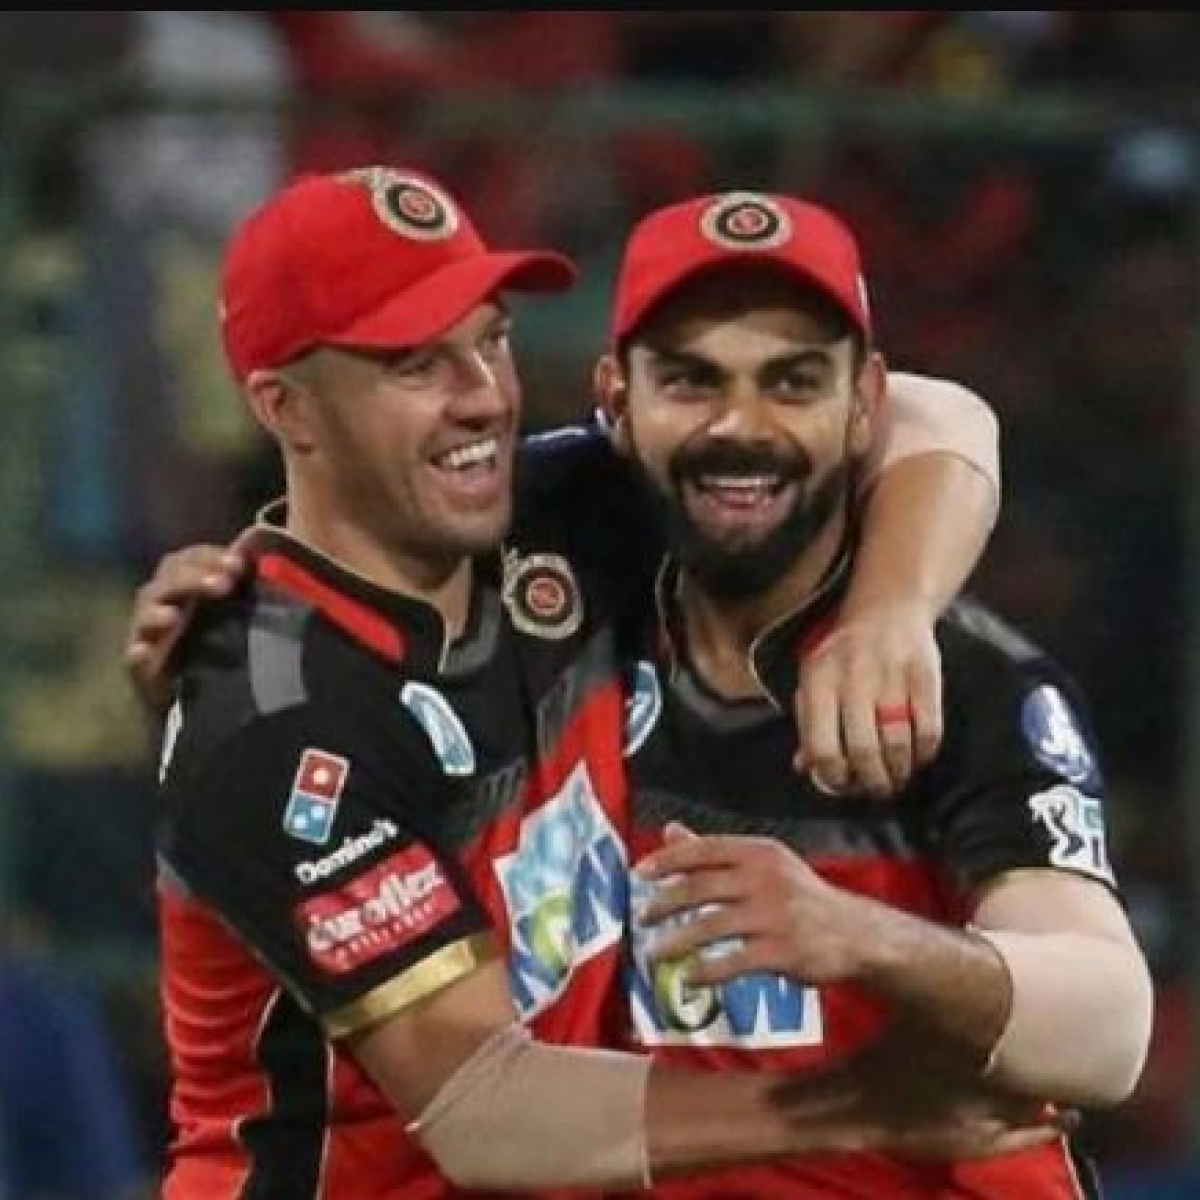 'Good health and lots of love': Virat Kohli showers 'brother' Ab de Villiers with birthday wishes